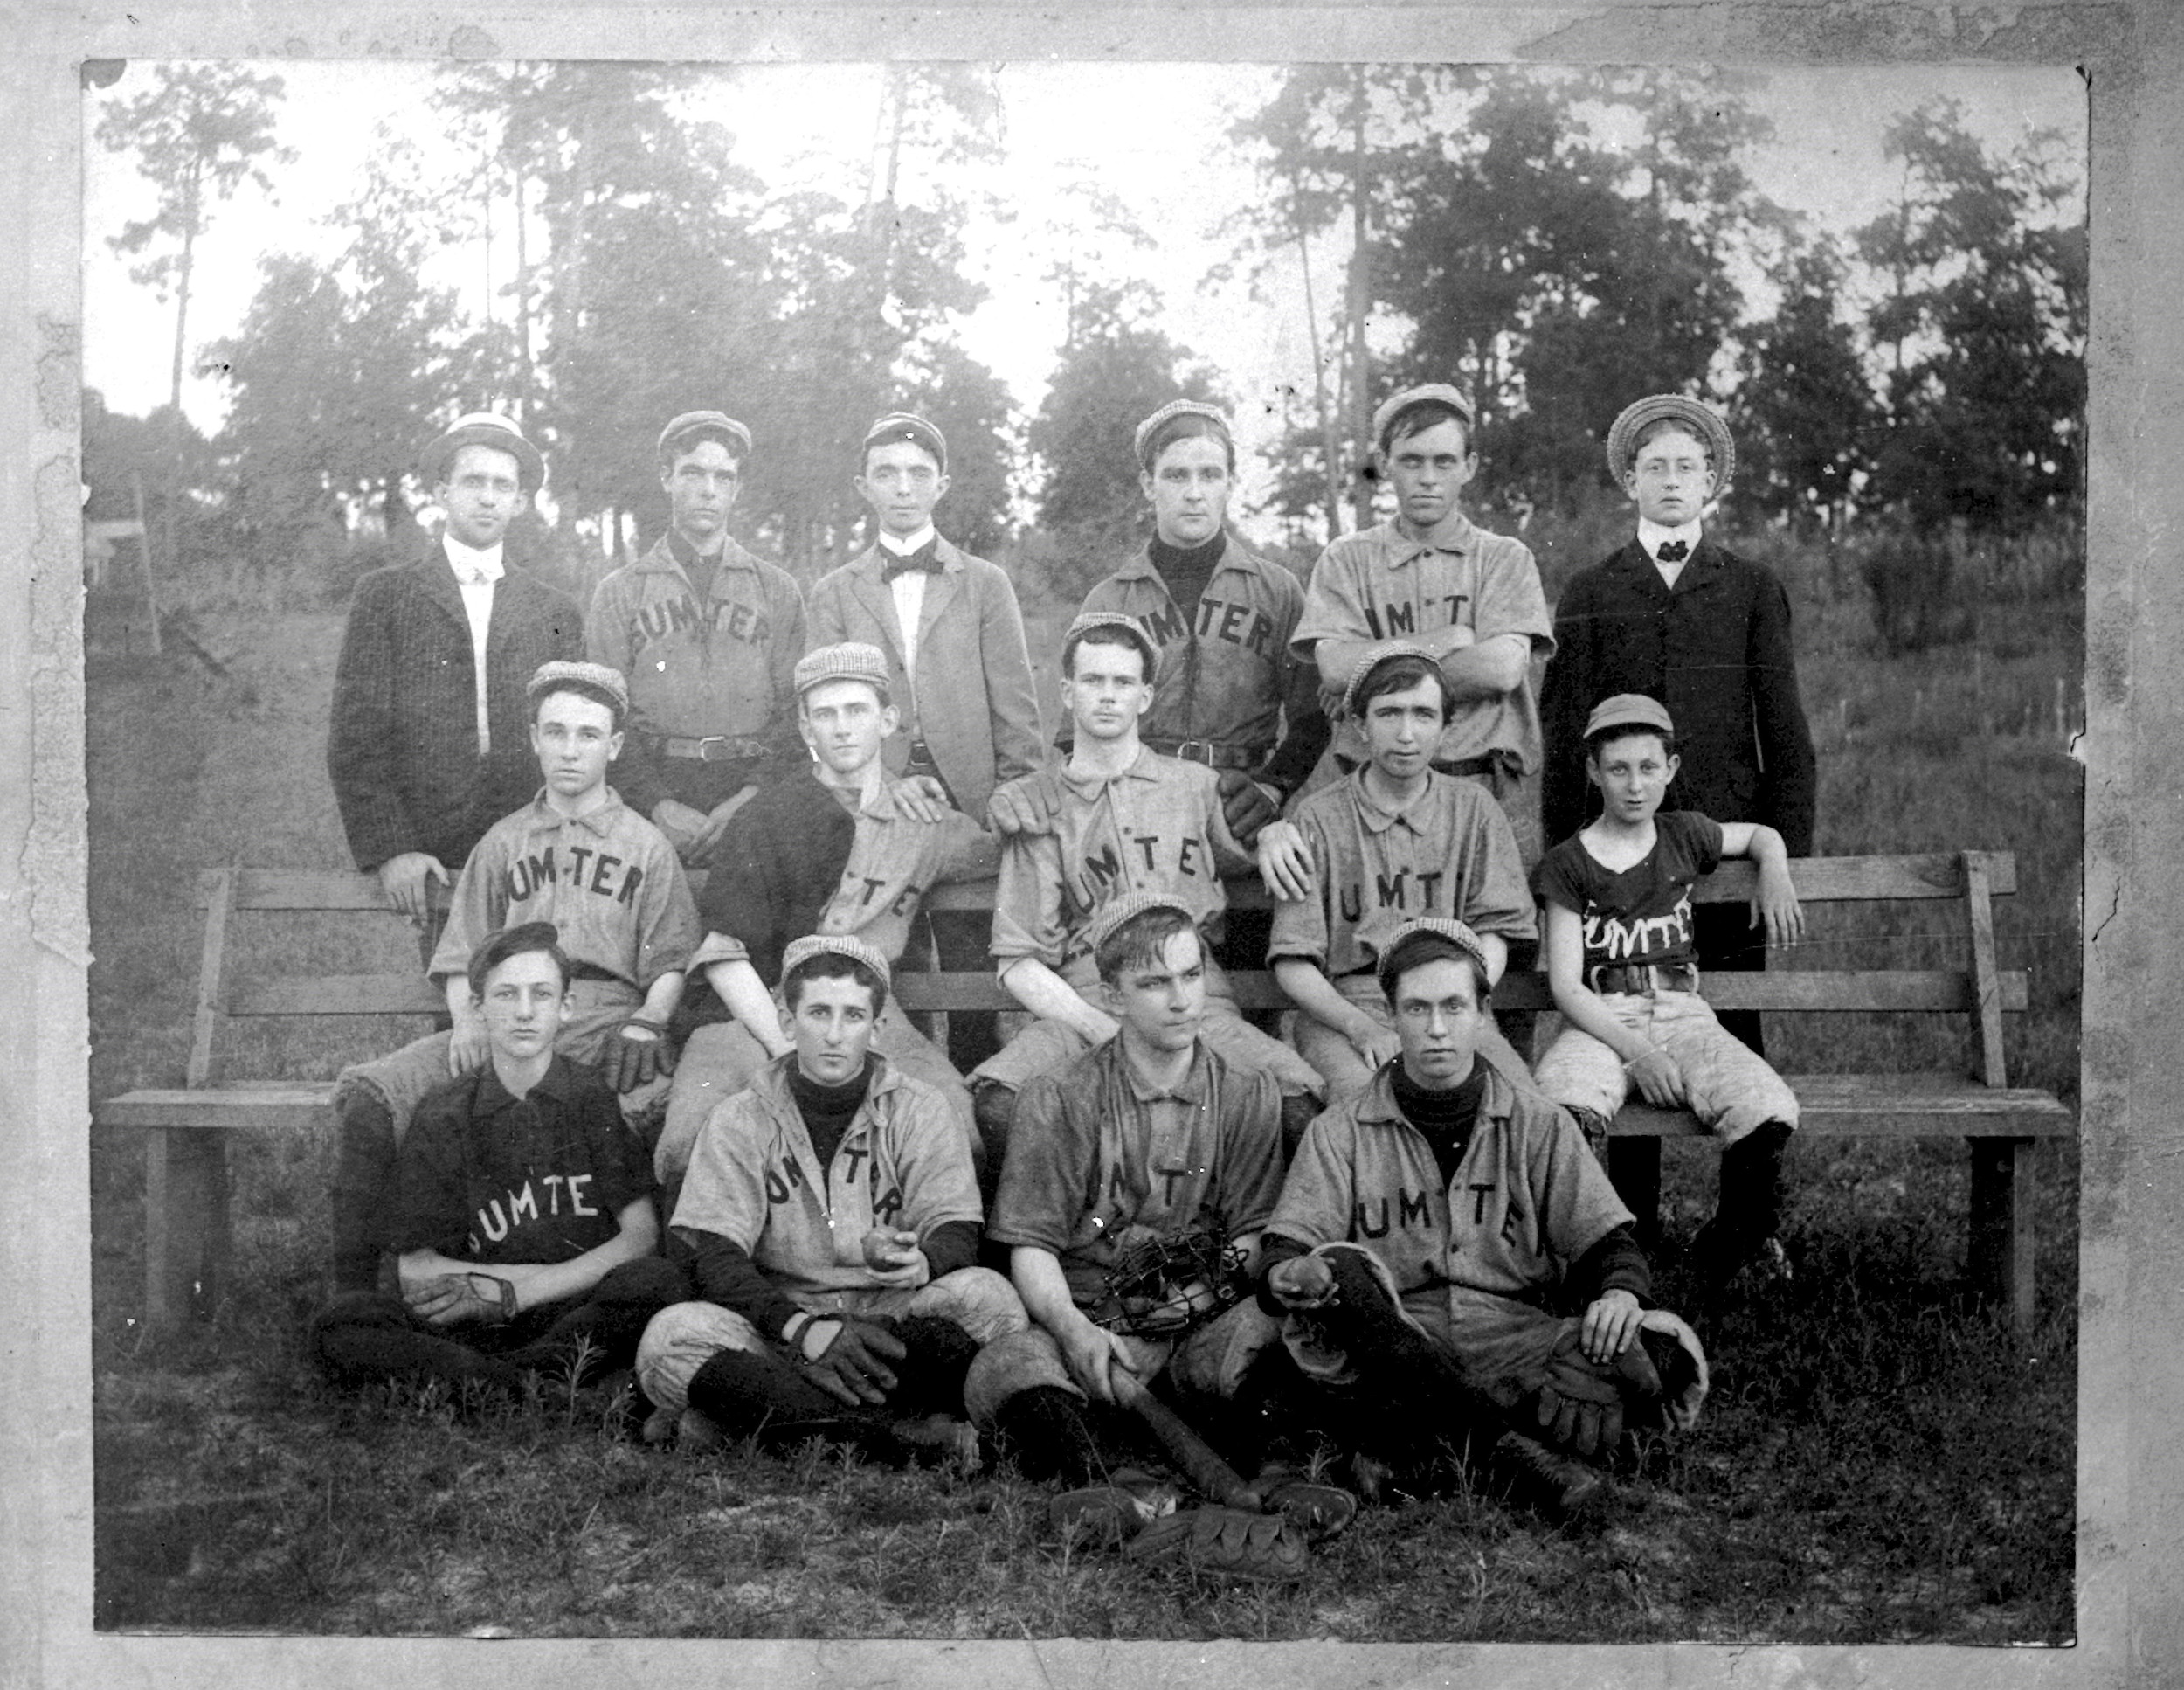 This photo shows the 1900 baseball team.